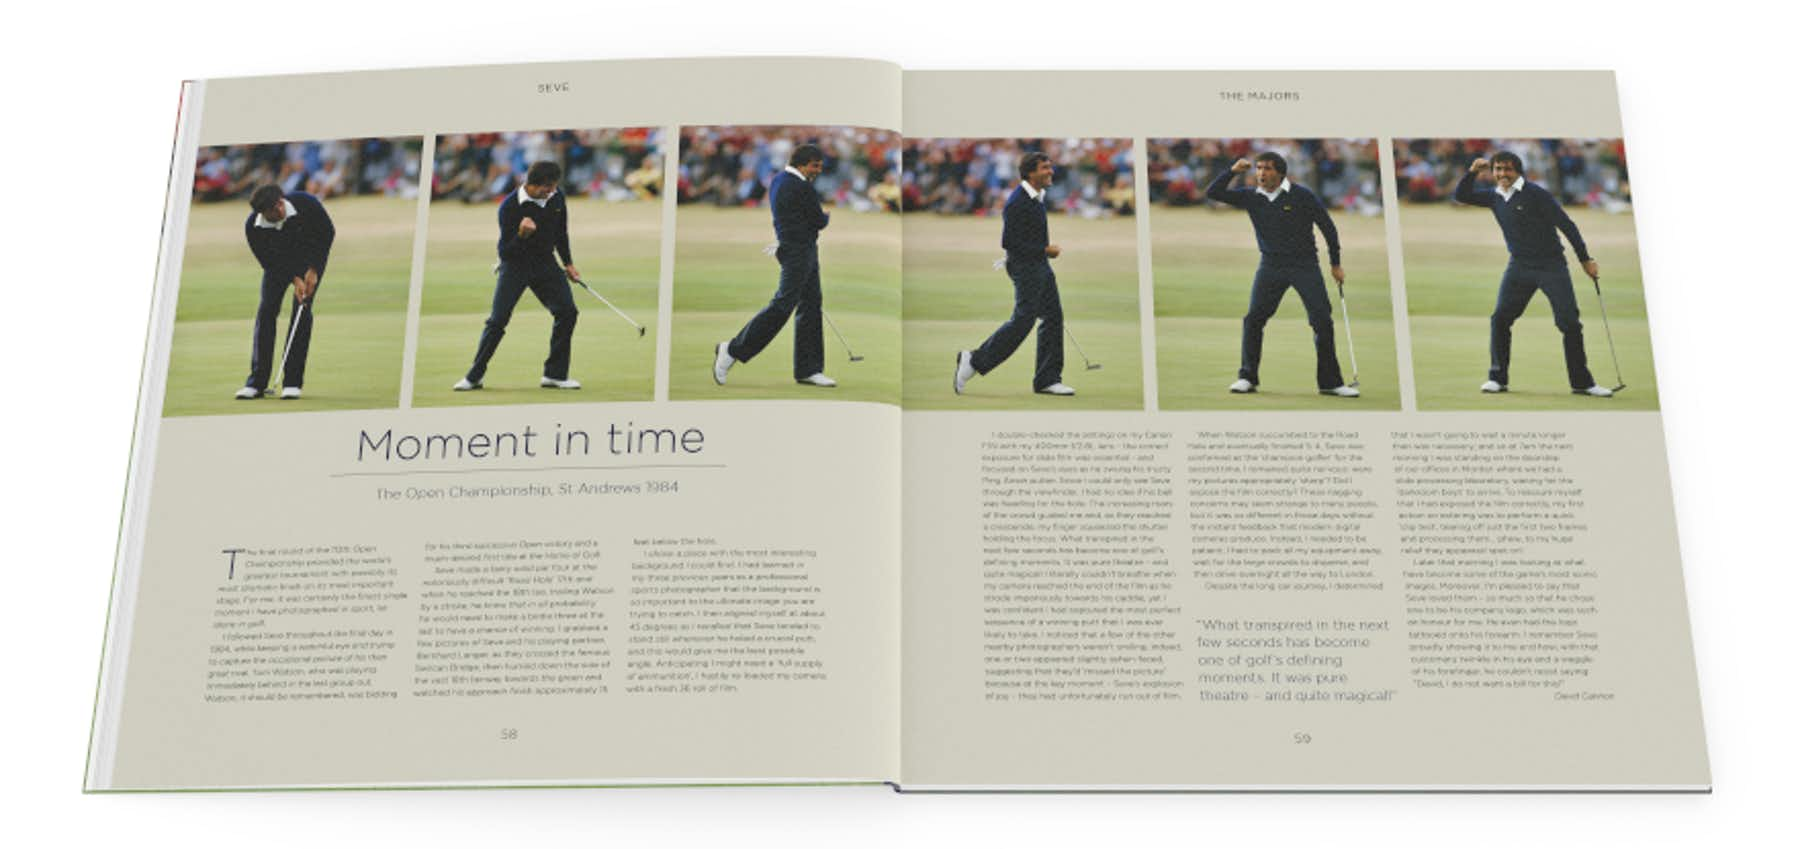 Seve: His Life Through the Lens – The Ultimate Tribute to a Golf Legend